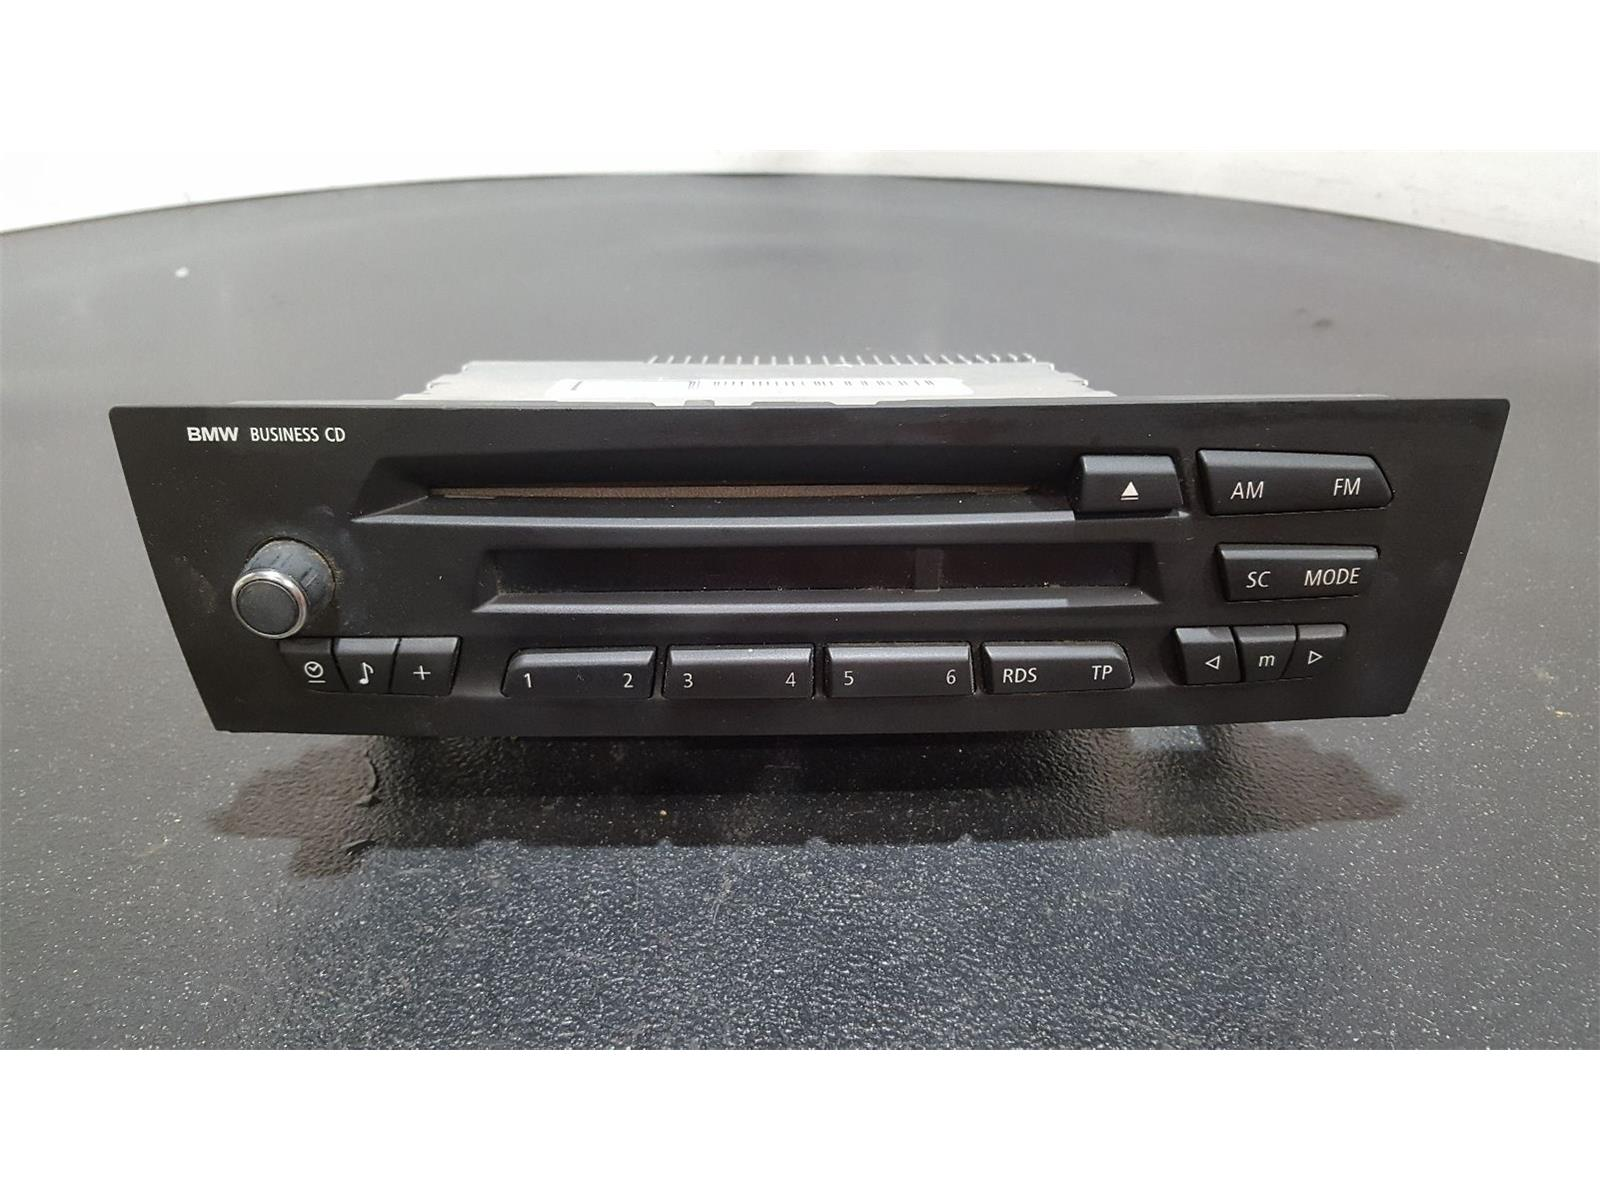 BMW 1 Series 2009 To 2011 CD Player Stereo Headunit